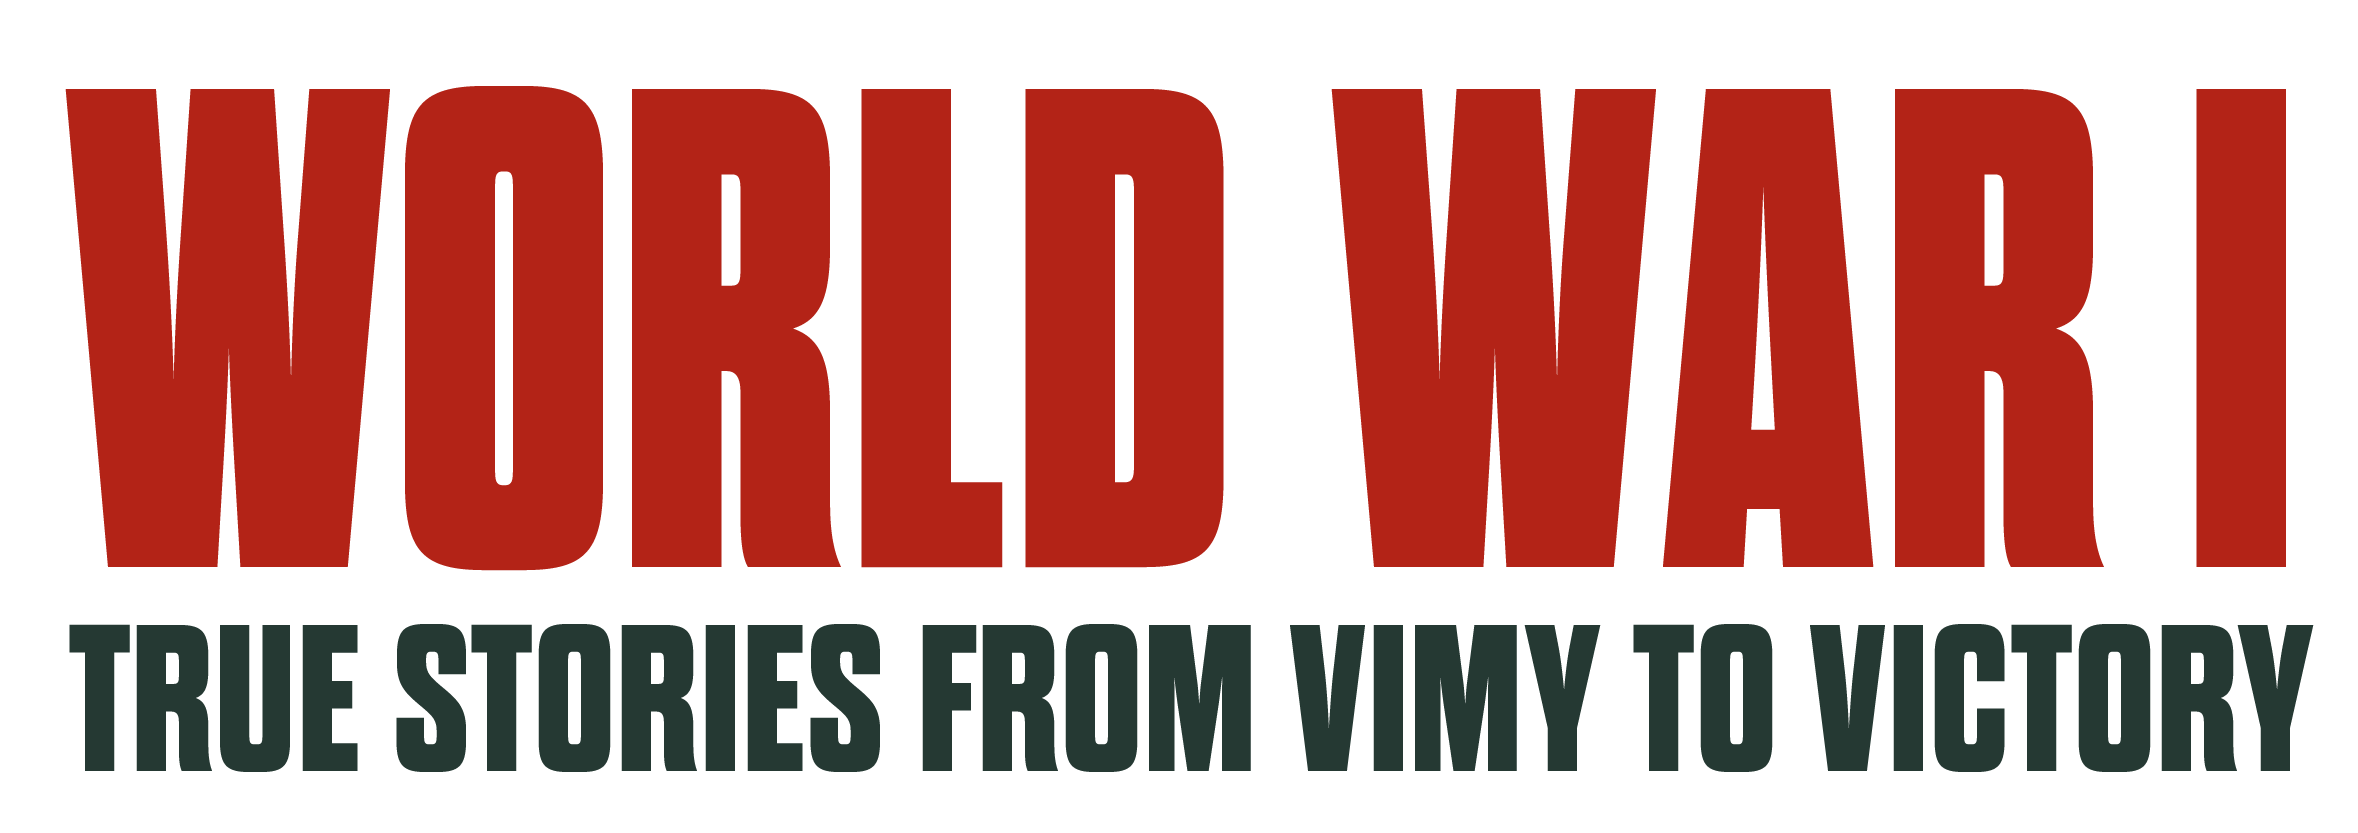 WWI stories